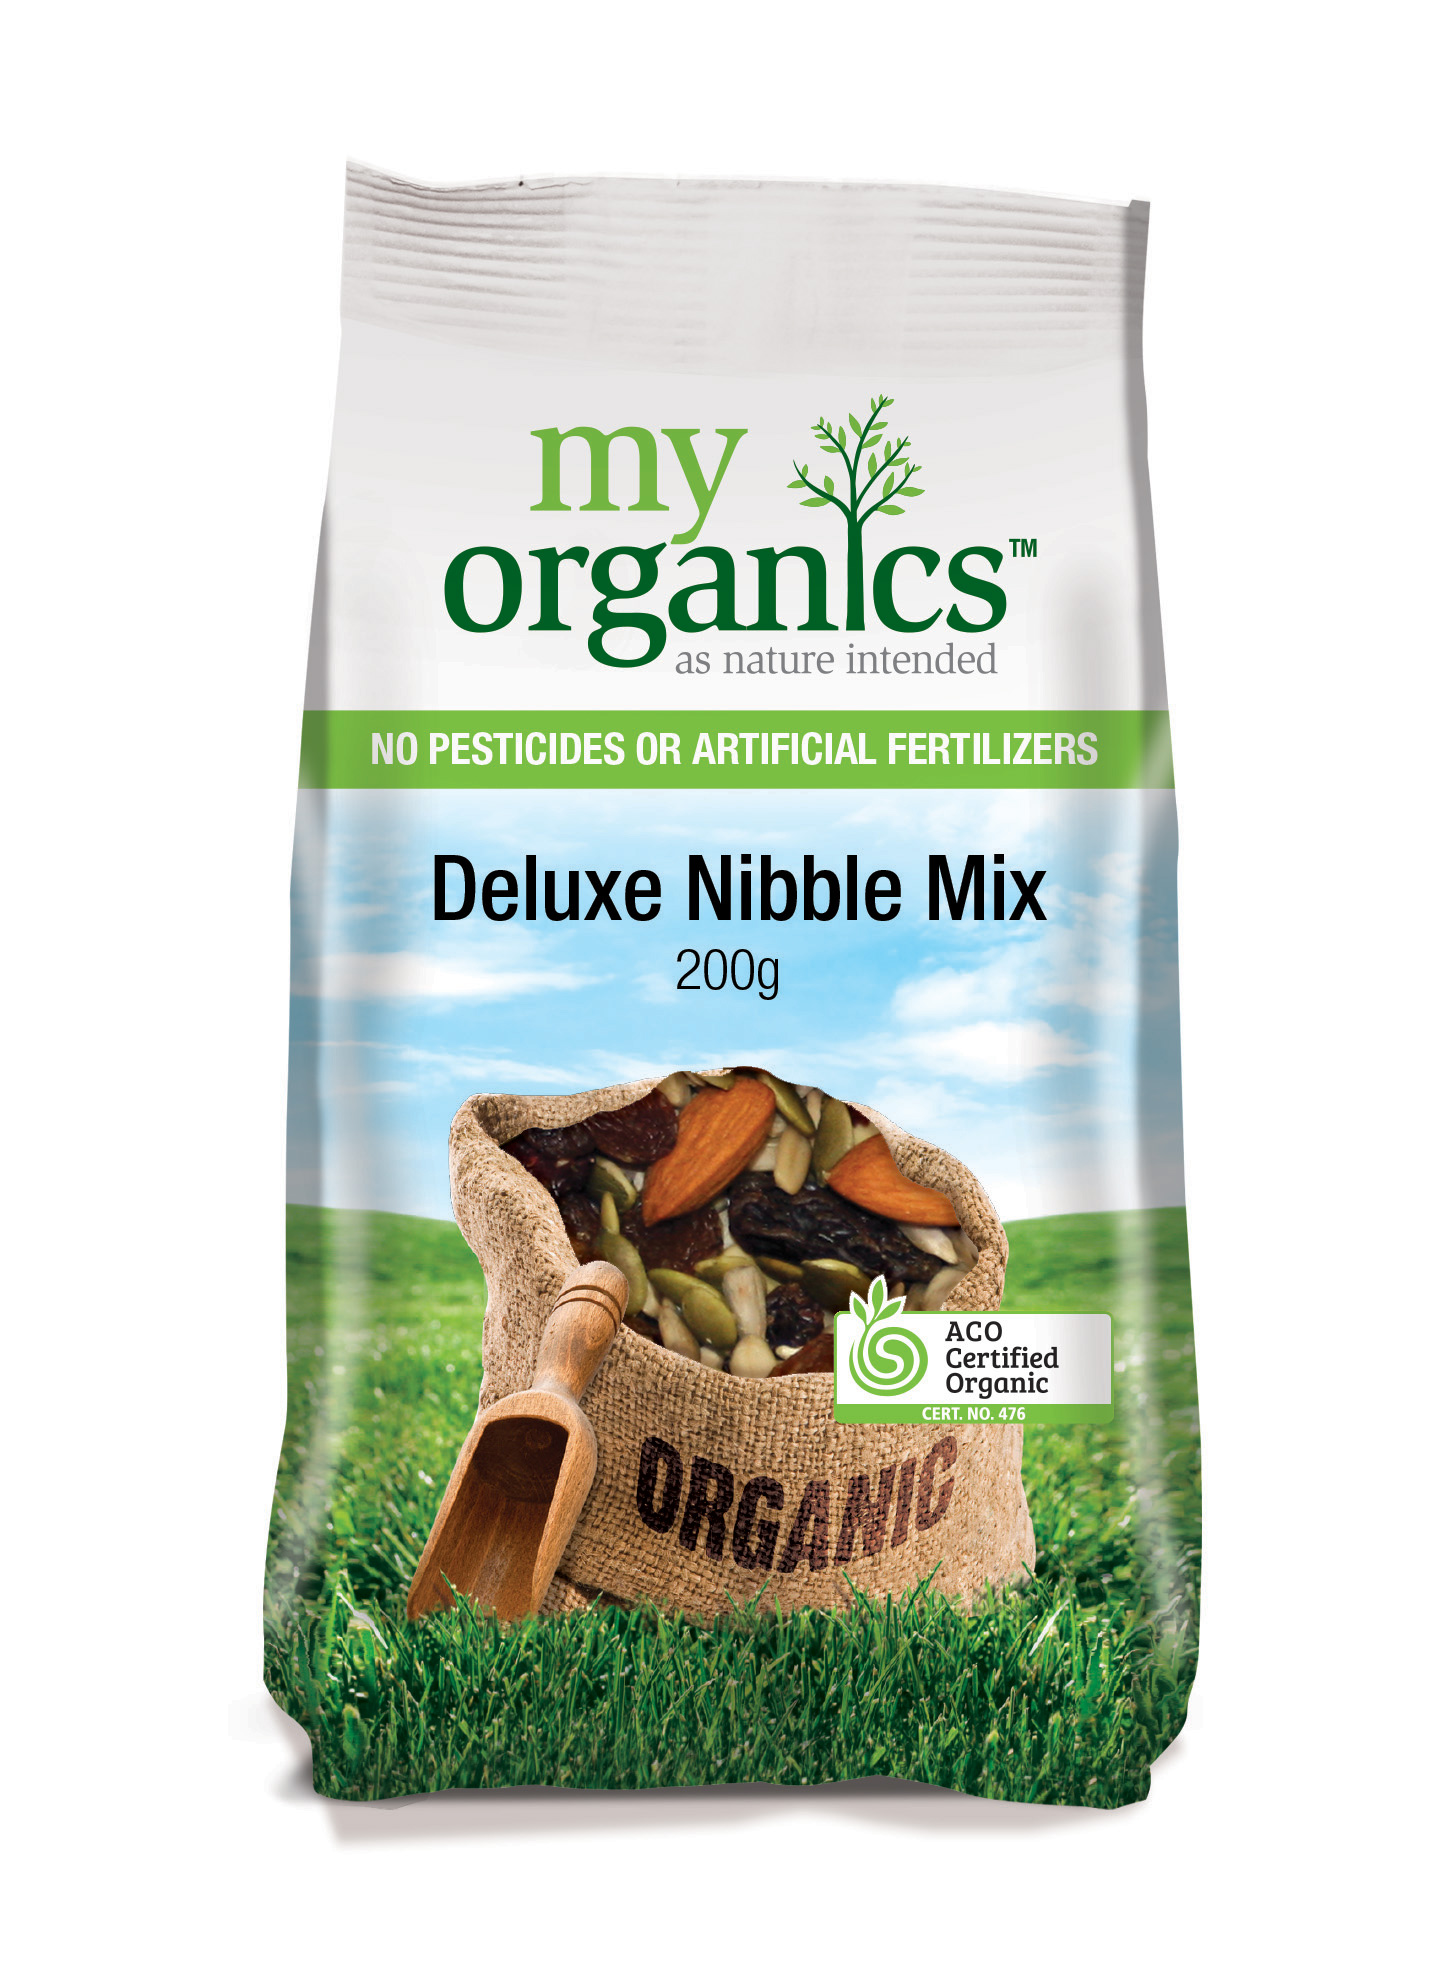 Deluxe Nibble Mix